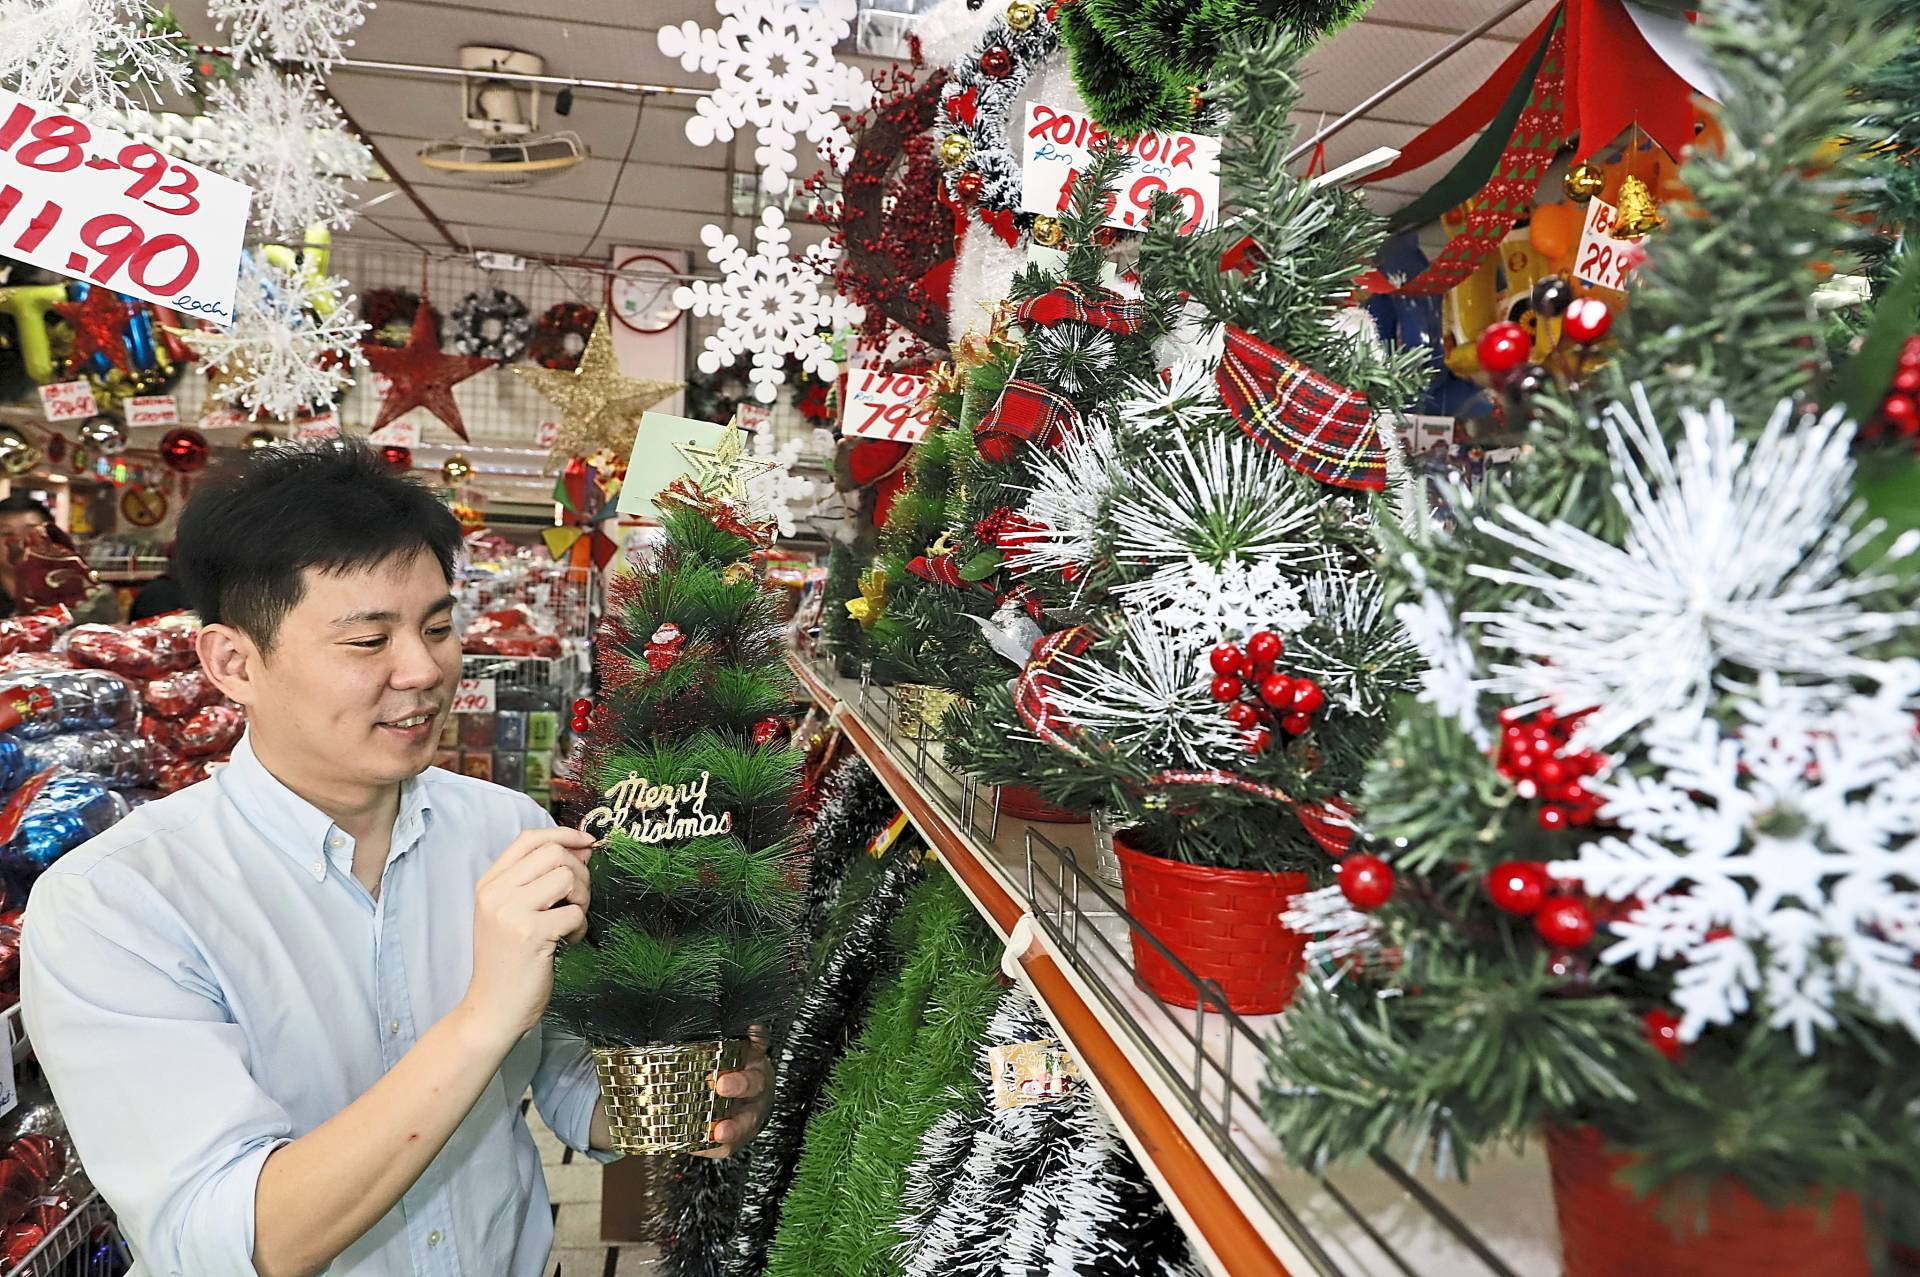 Goh checking out the Christmas decorations for his office